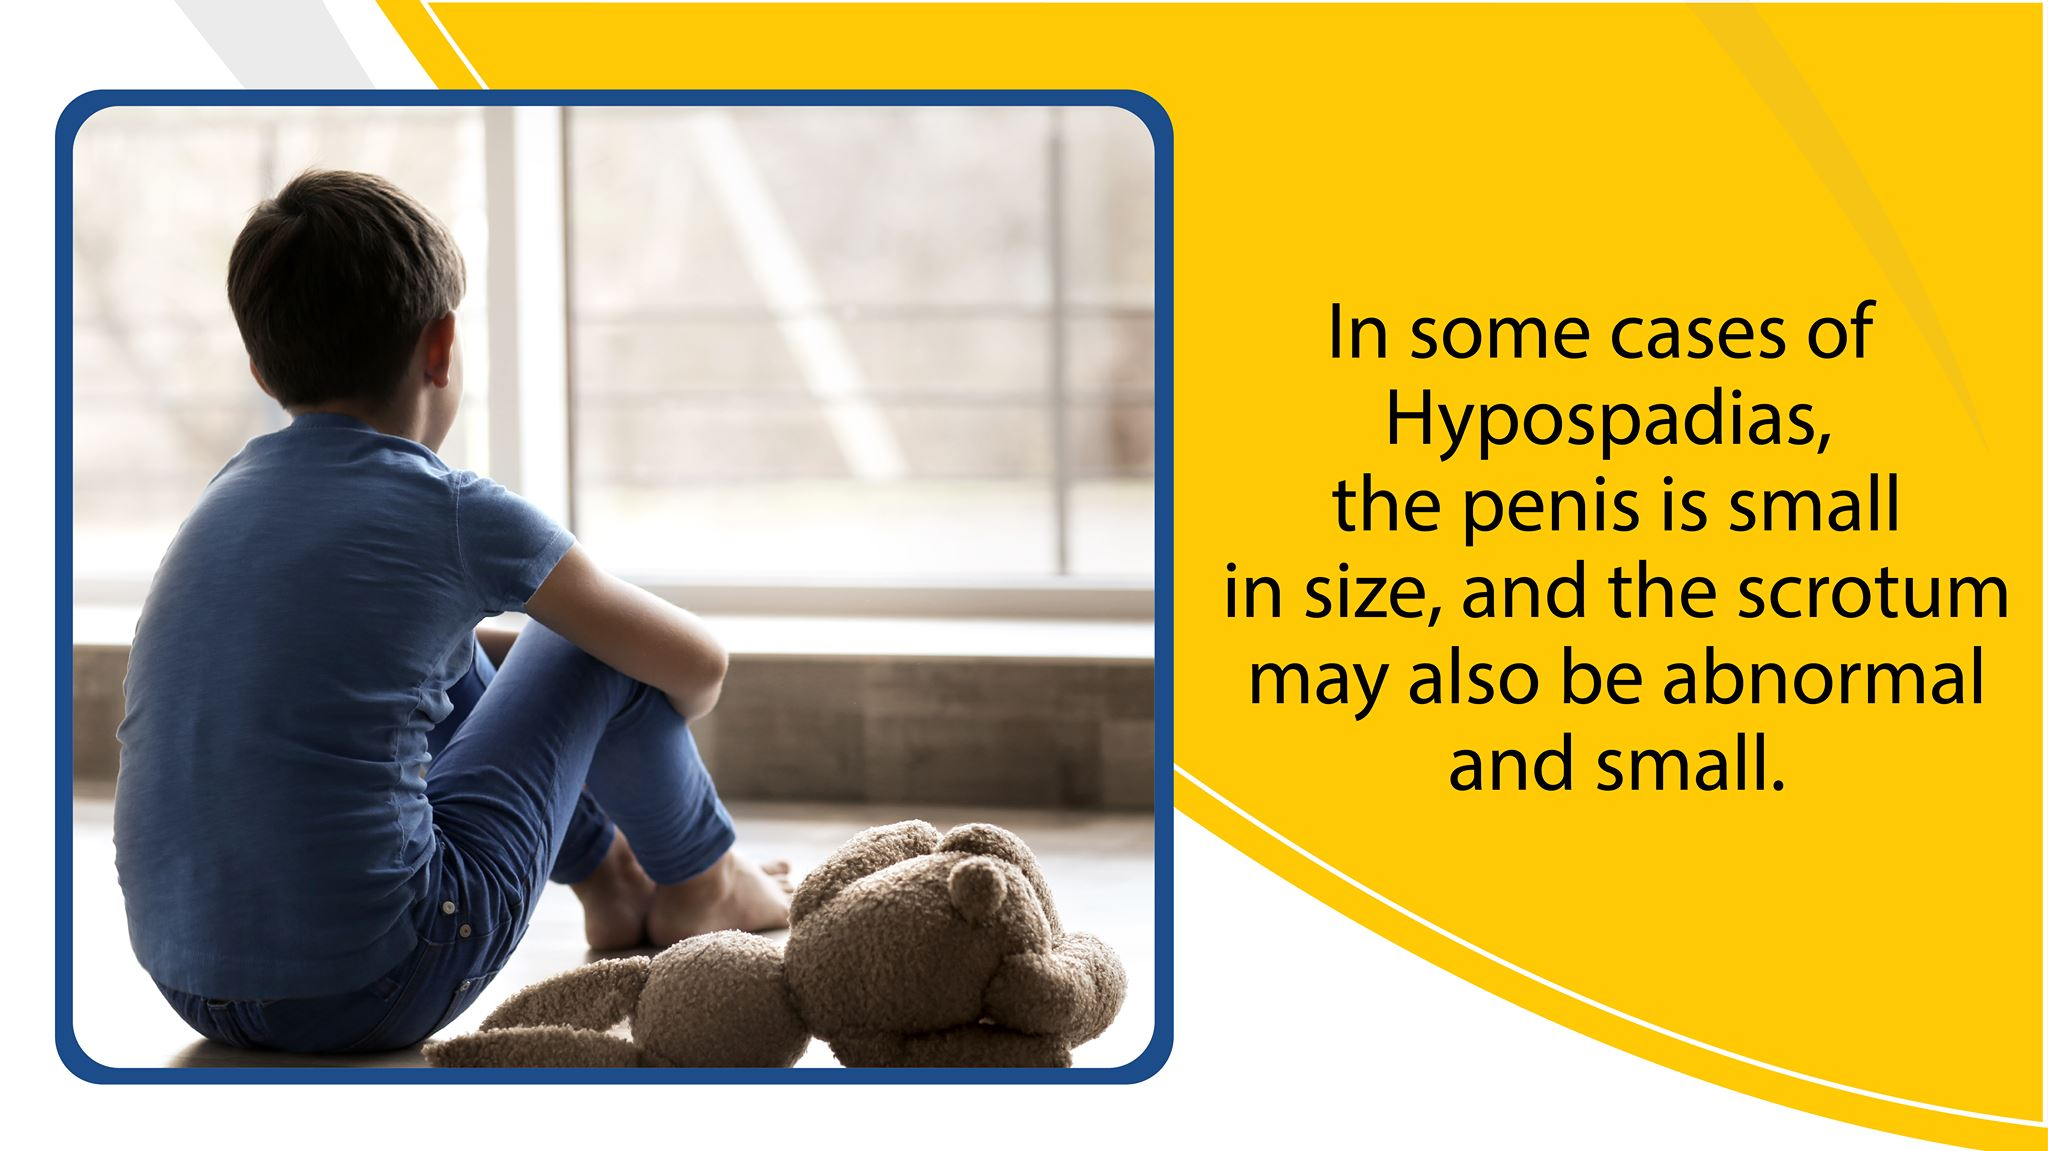 In some cases of hypospadias, the penis is small in size